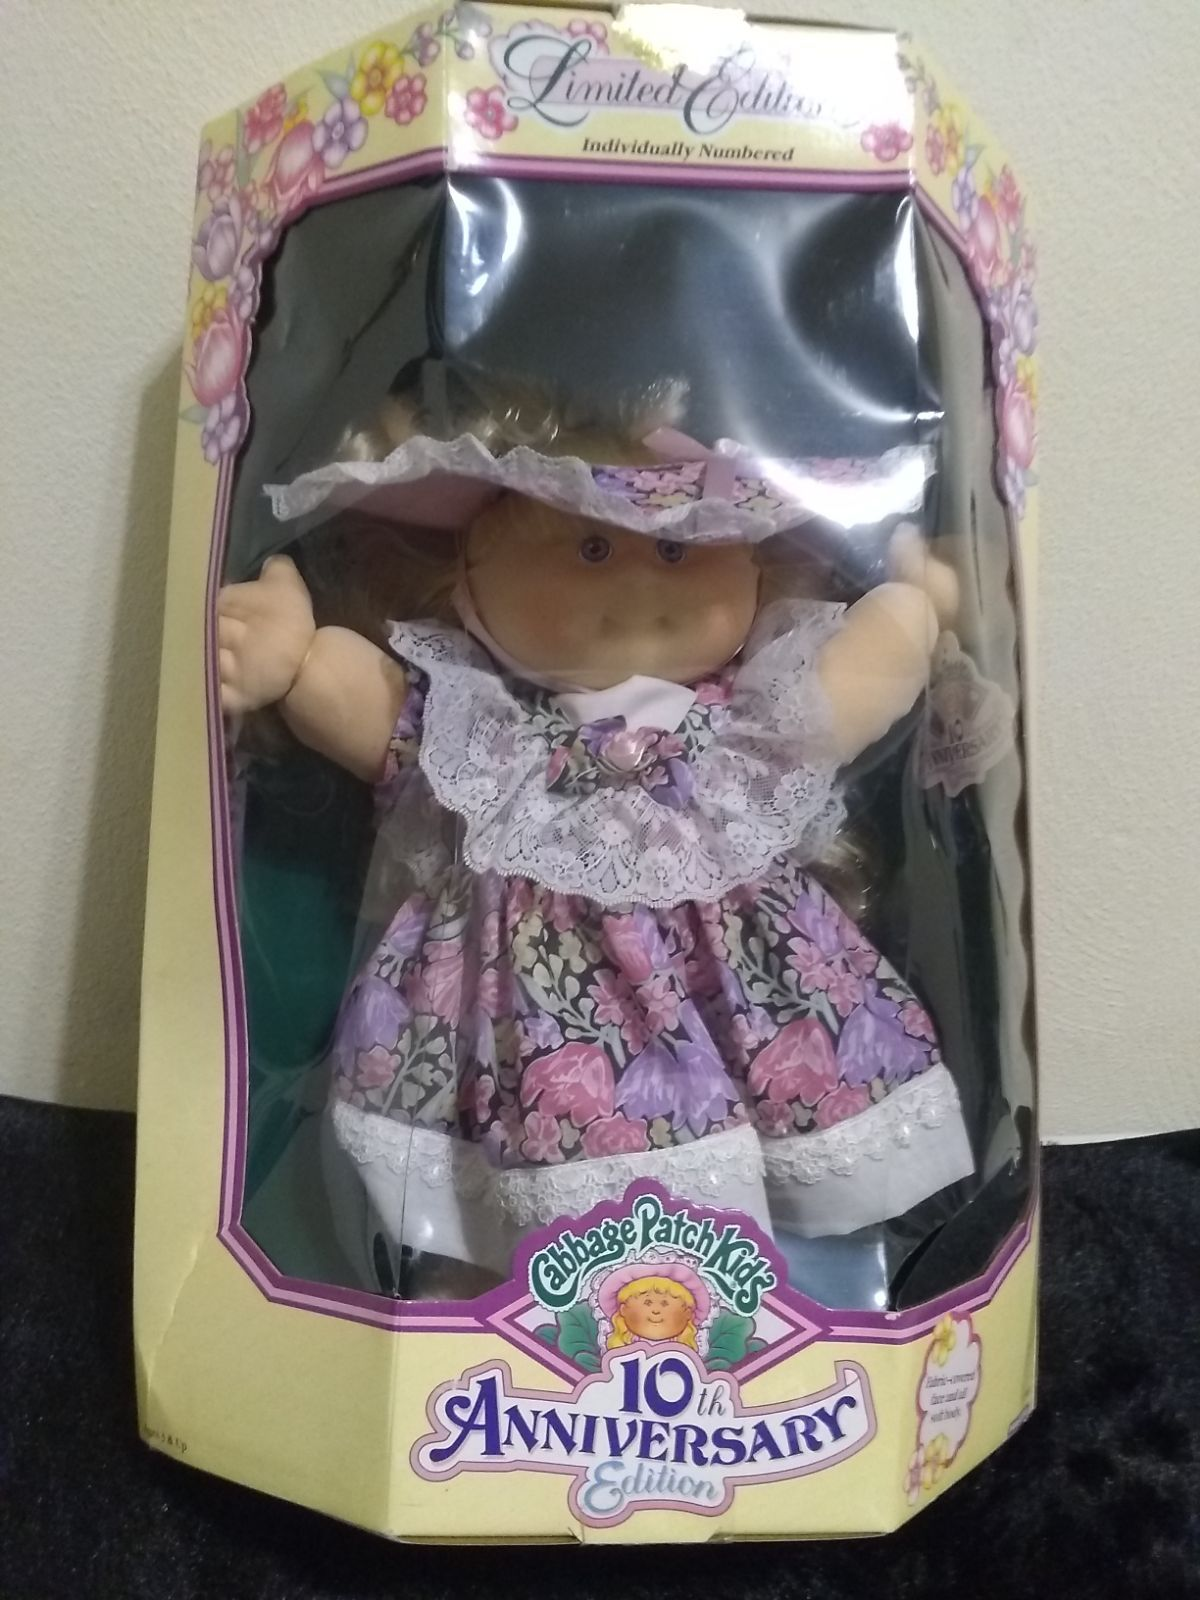 Limited Edition Individually Number Cabbage Patch Kids 10th Anniversary Edition Zora Mae Brand New Cabbage Patch Kids Cabbage Patch Kids Dolls Cabbage Patch